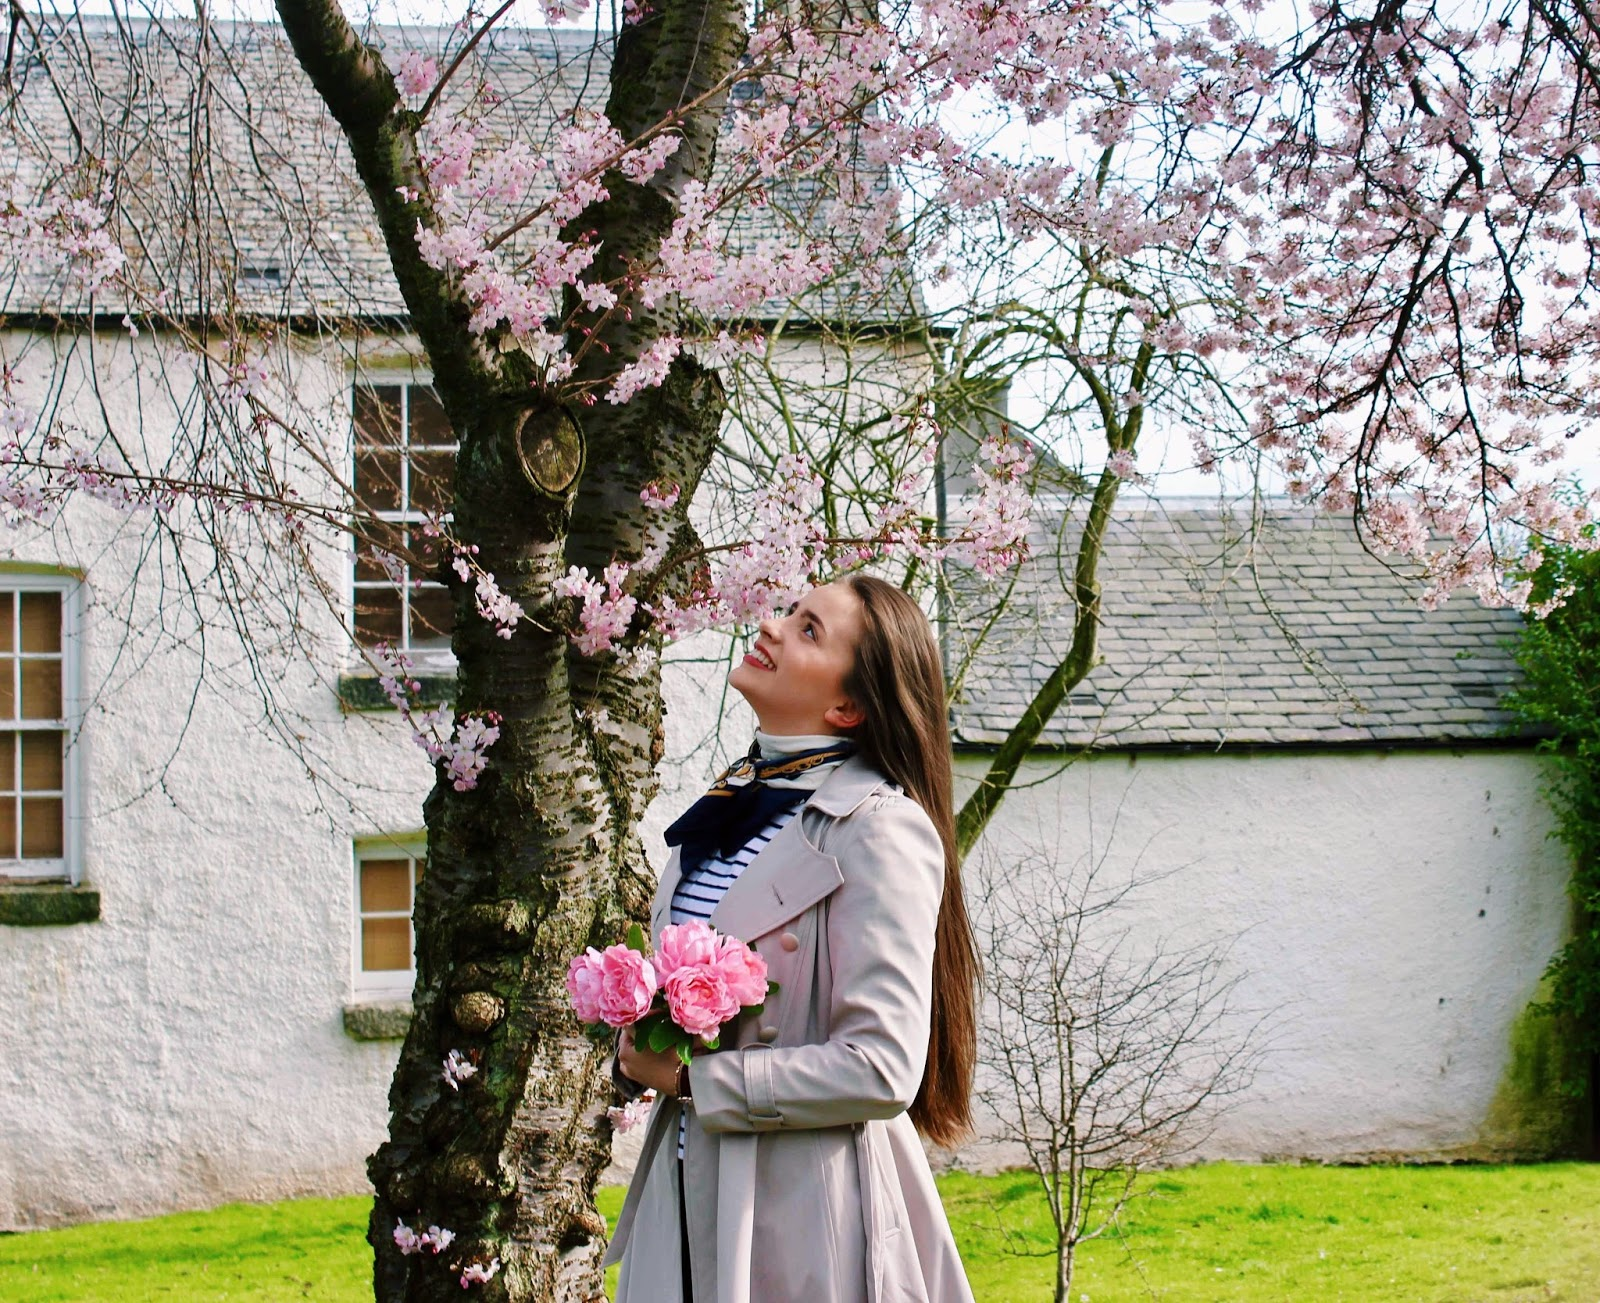 Girl with flowers under blooming cherry tree in spring